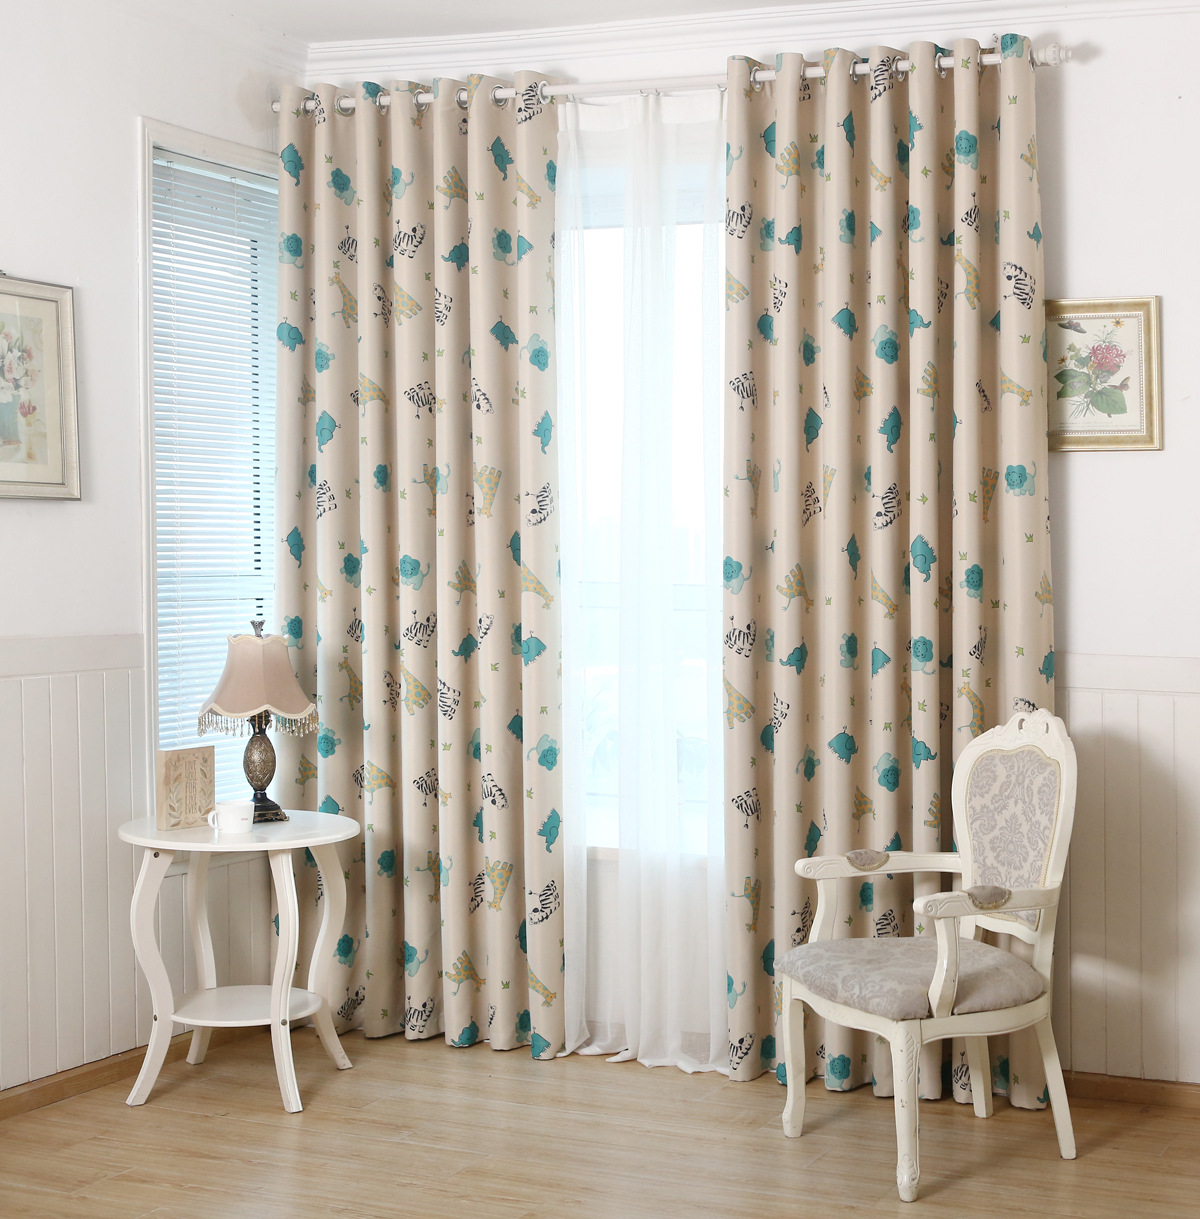 Kids Bedroom Curtain Popular Curtains Kids Bedroom Buy Cheap Curtains Kids Bedroom Lots